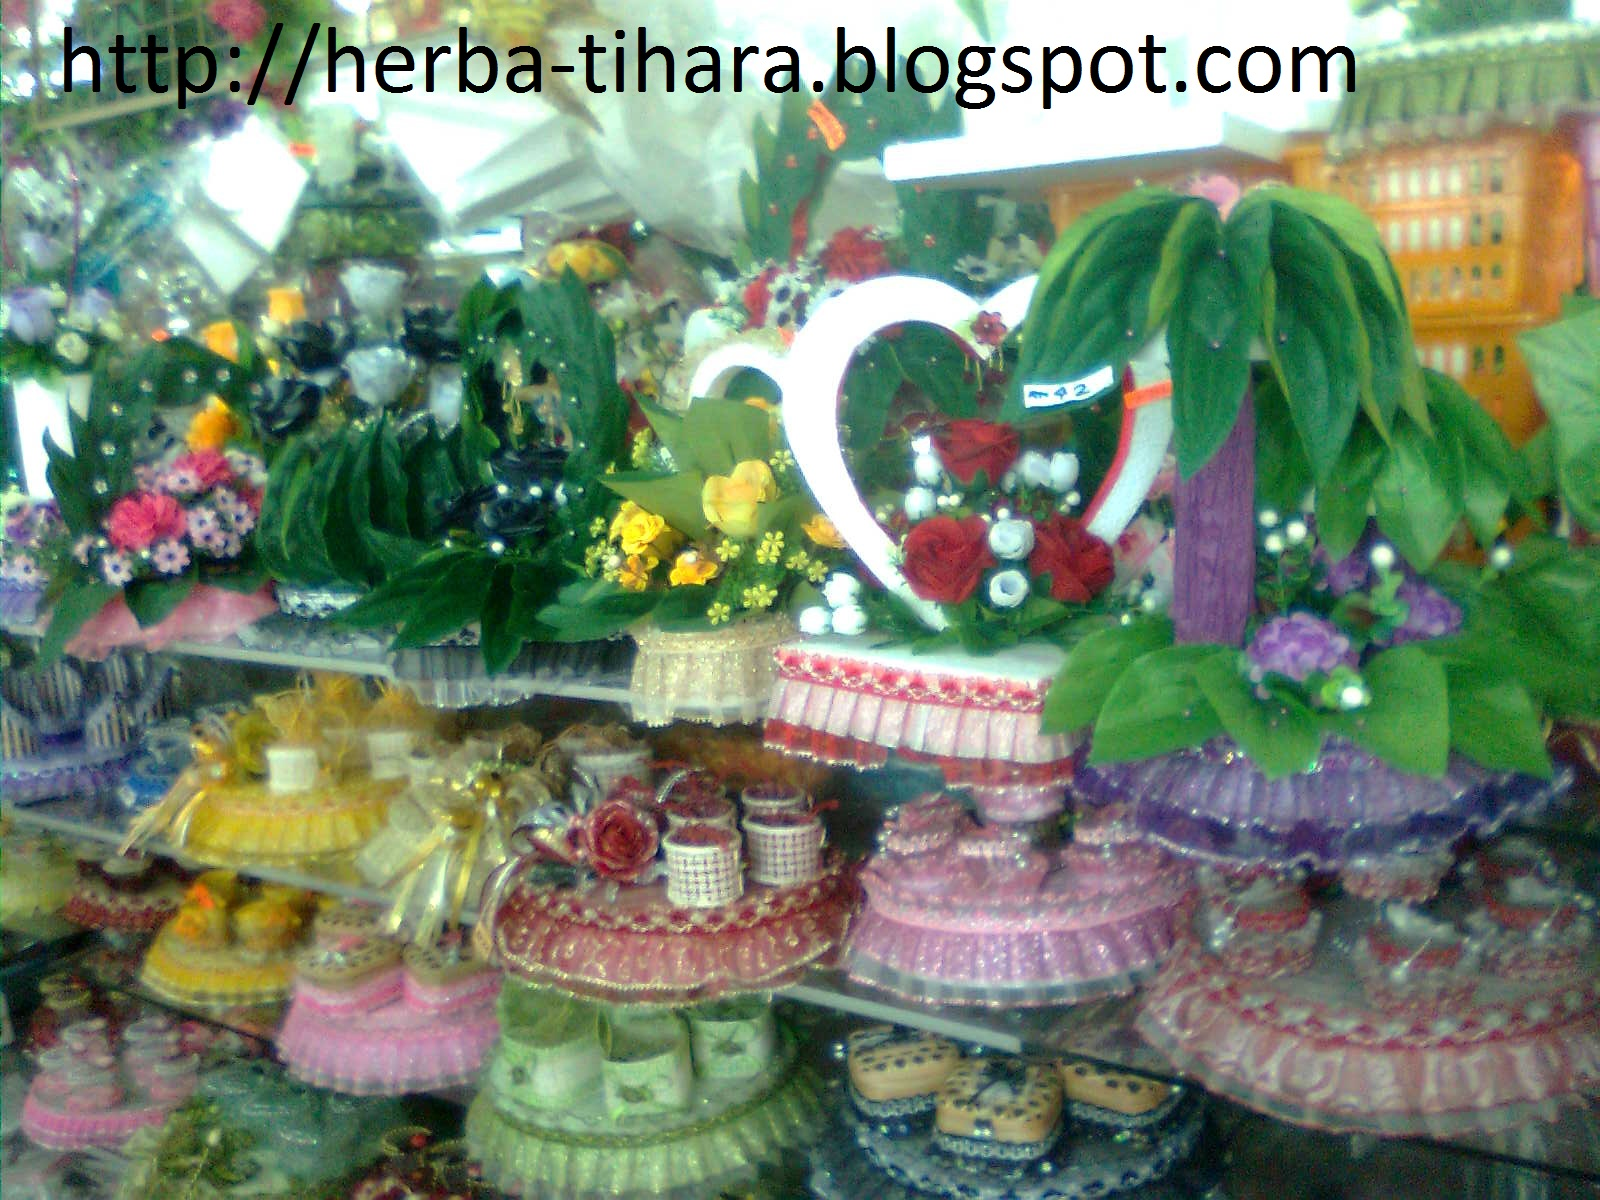 Comment On This Picture Hiasan Bunga Hantaran Comment On This | Apps ...